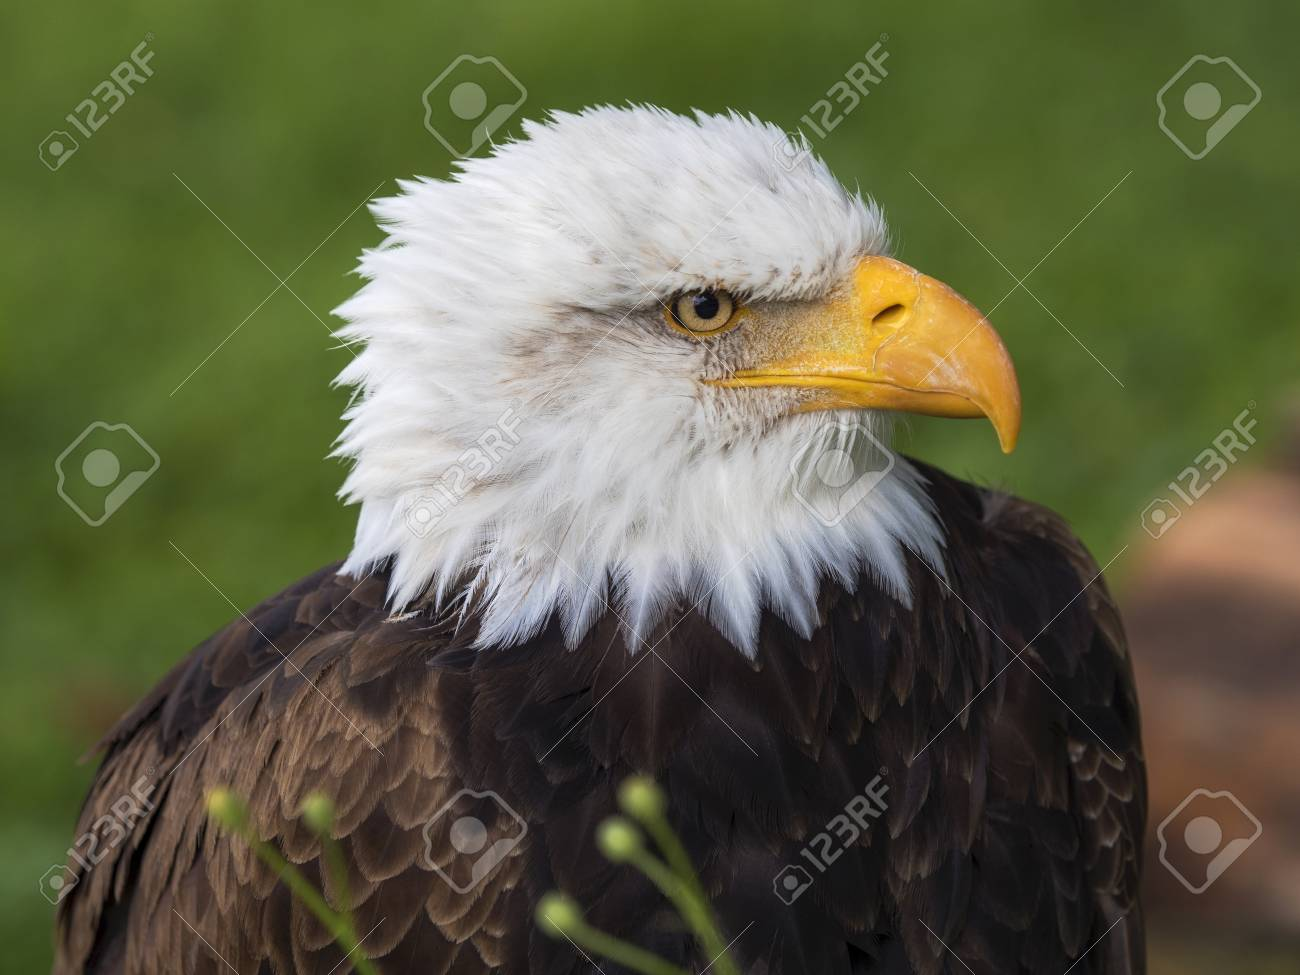 Bald Eagle Famous For Being The National Symbol Of The United